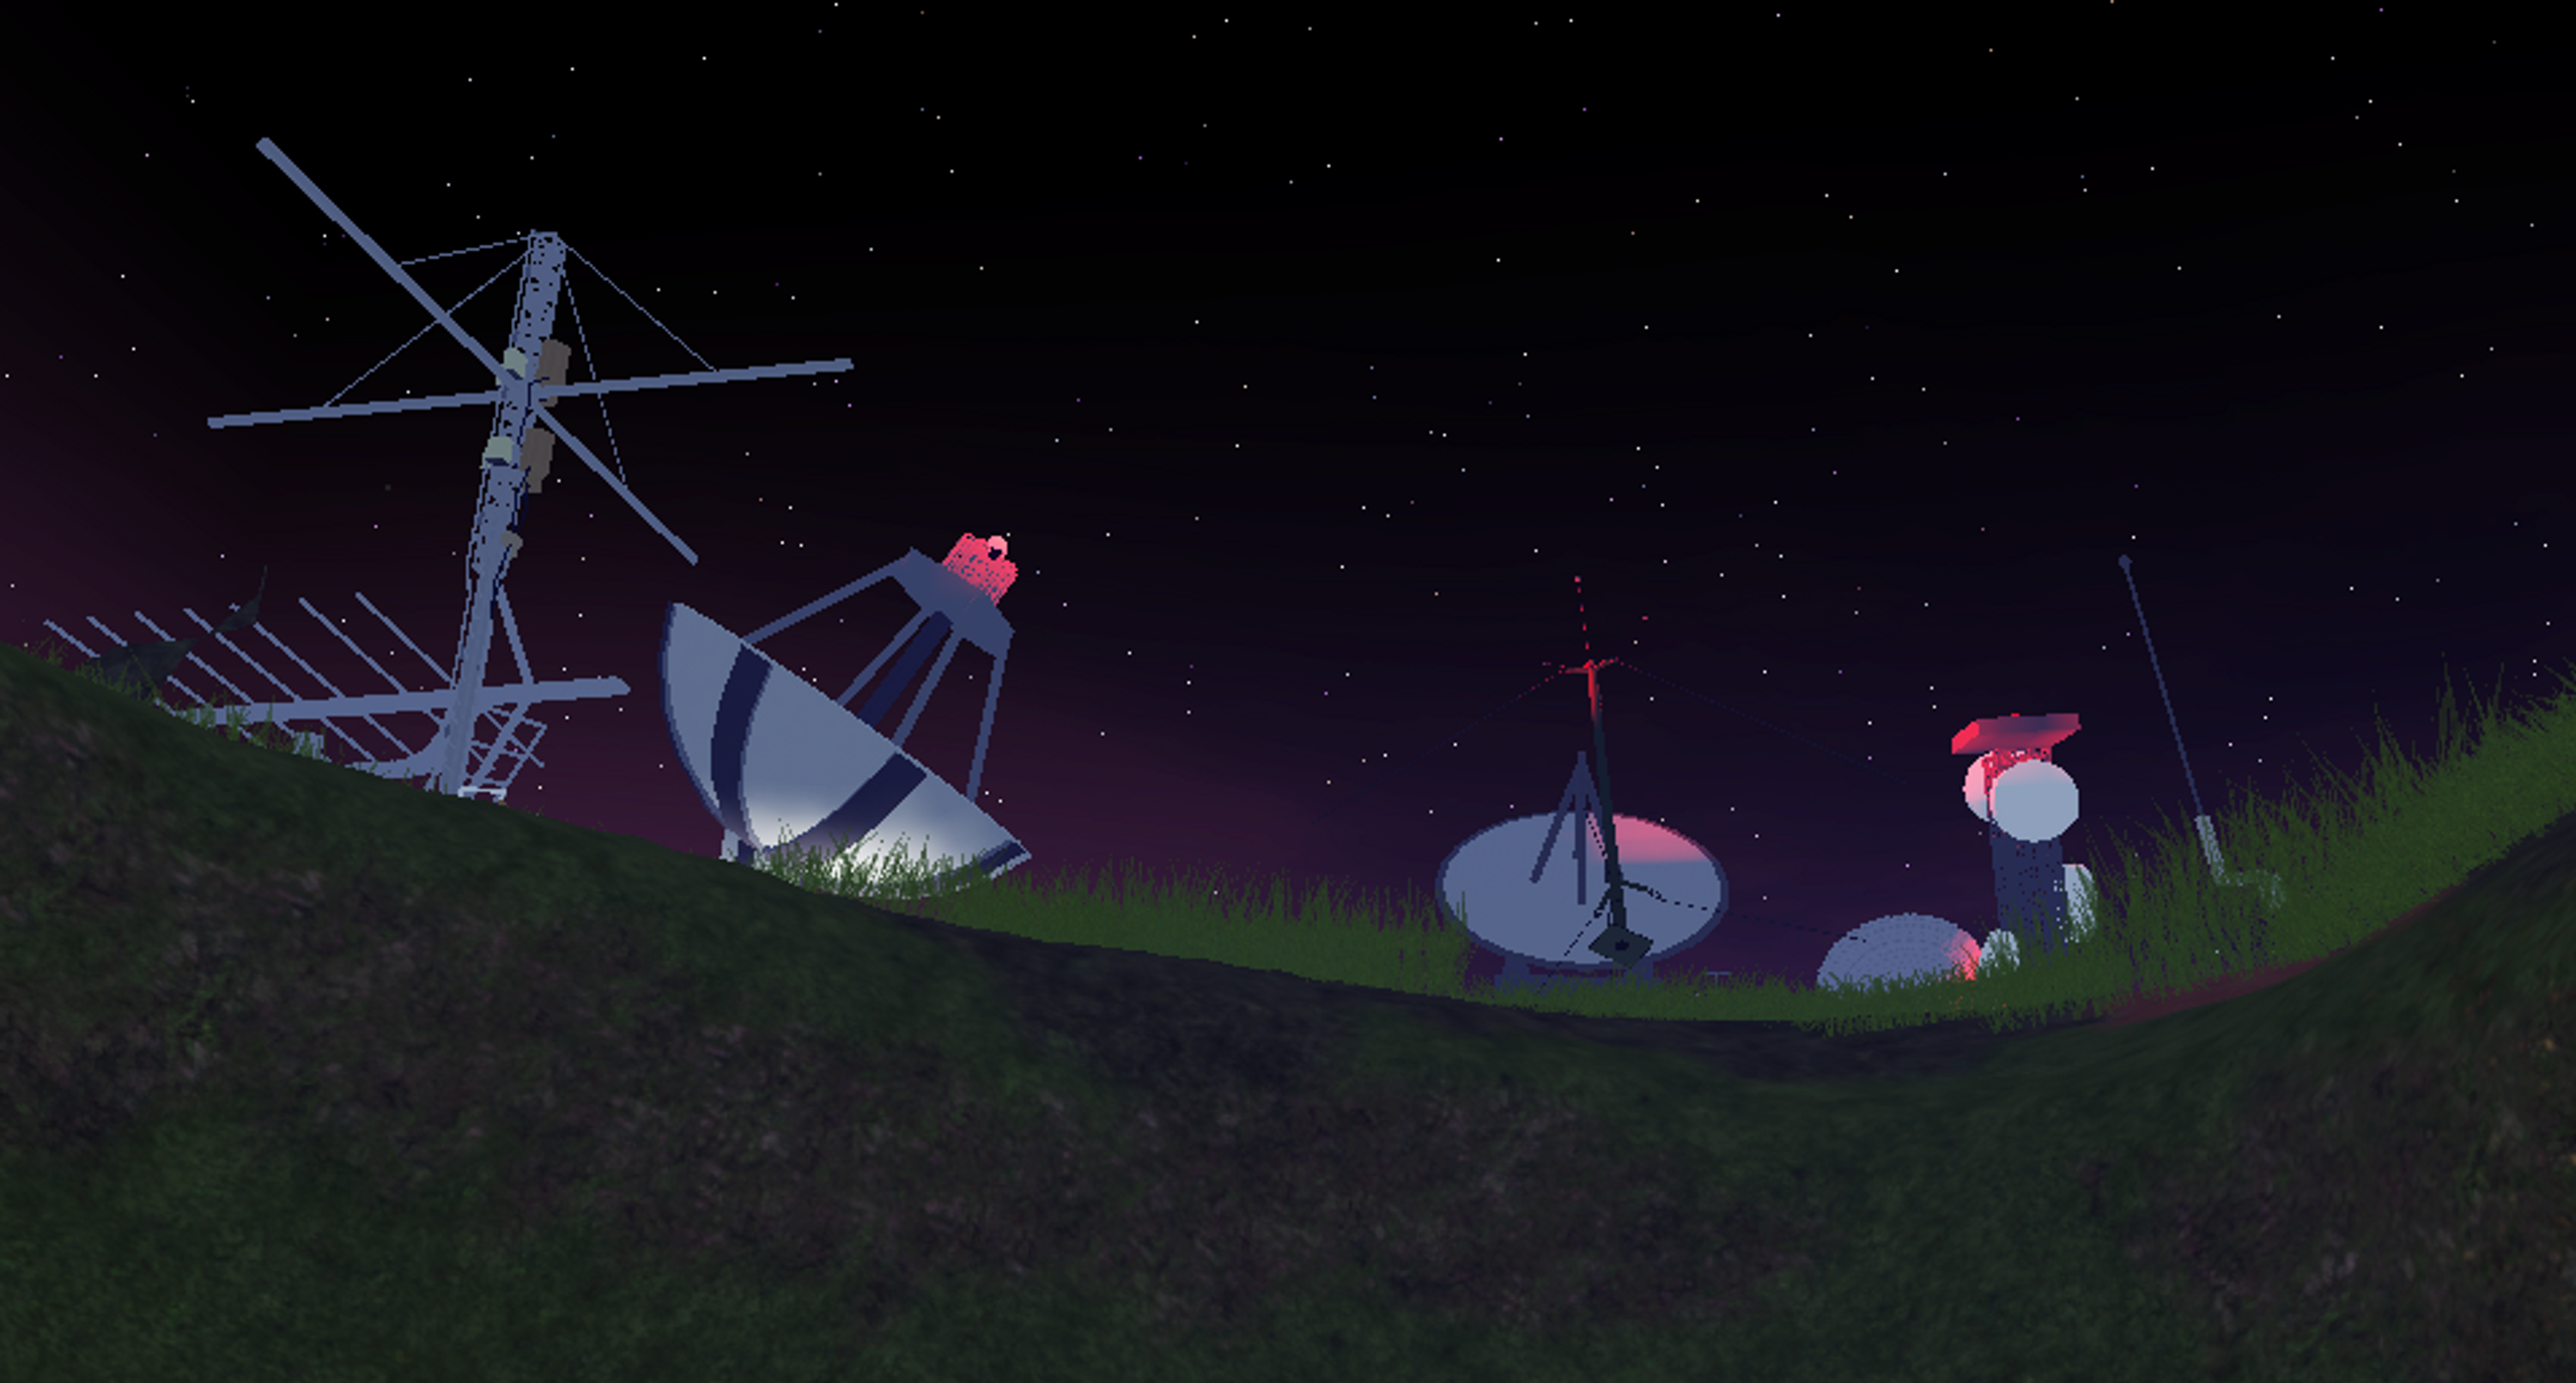 Satellite dishes up on a hill at night